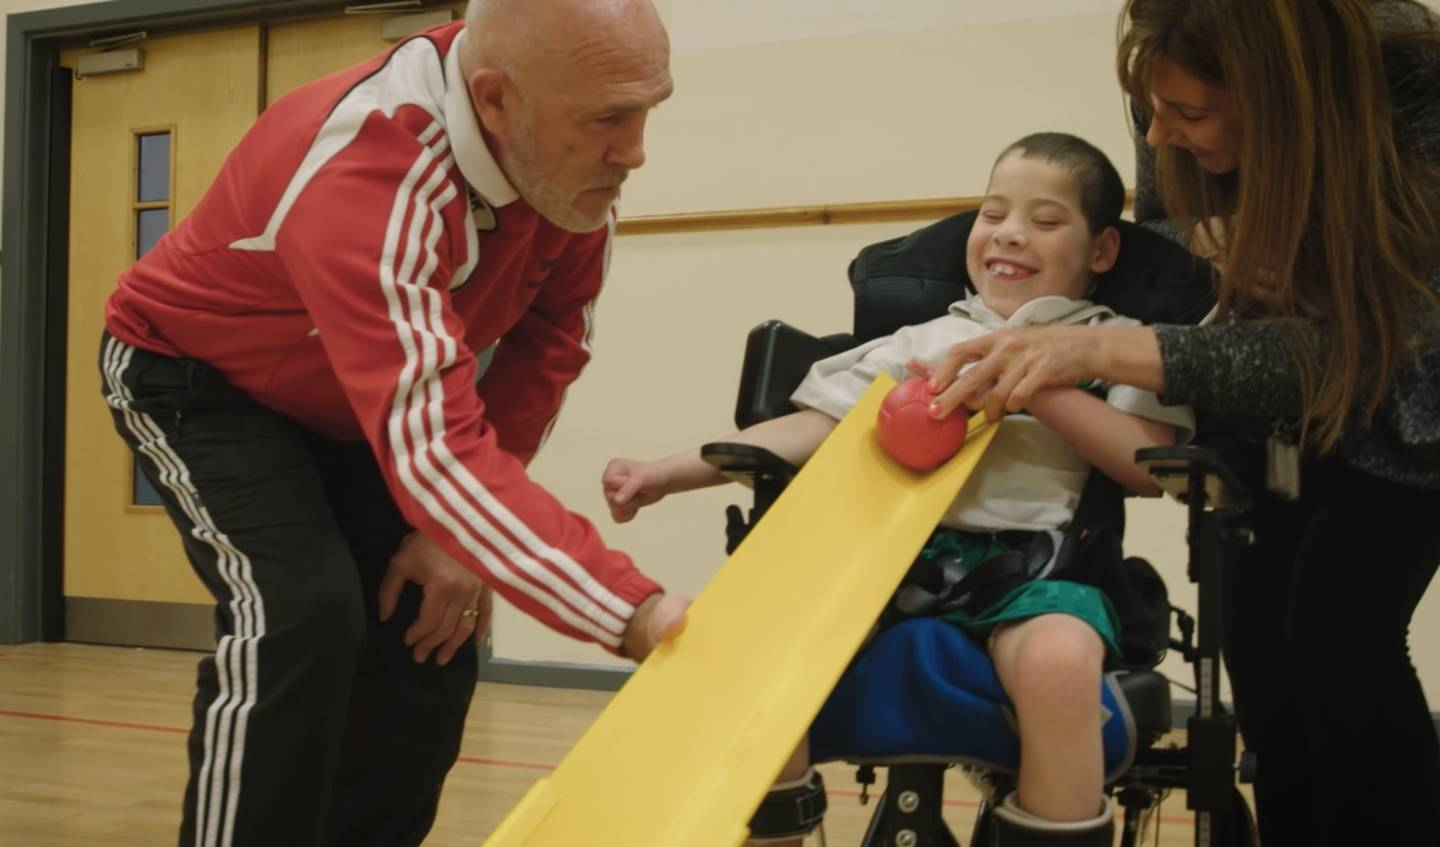 Young boy playing boccia with teacher and supporter